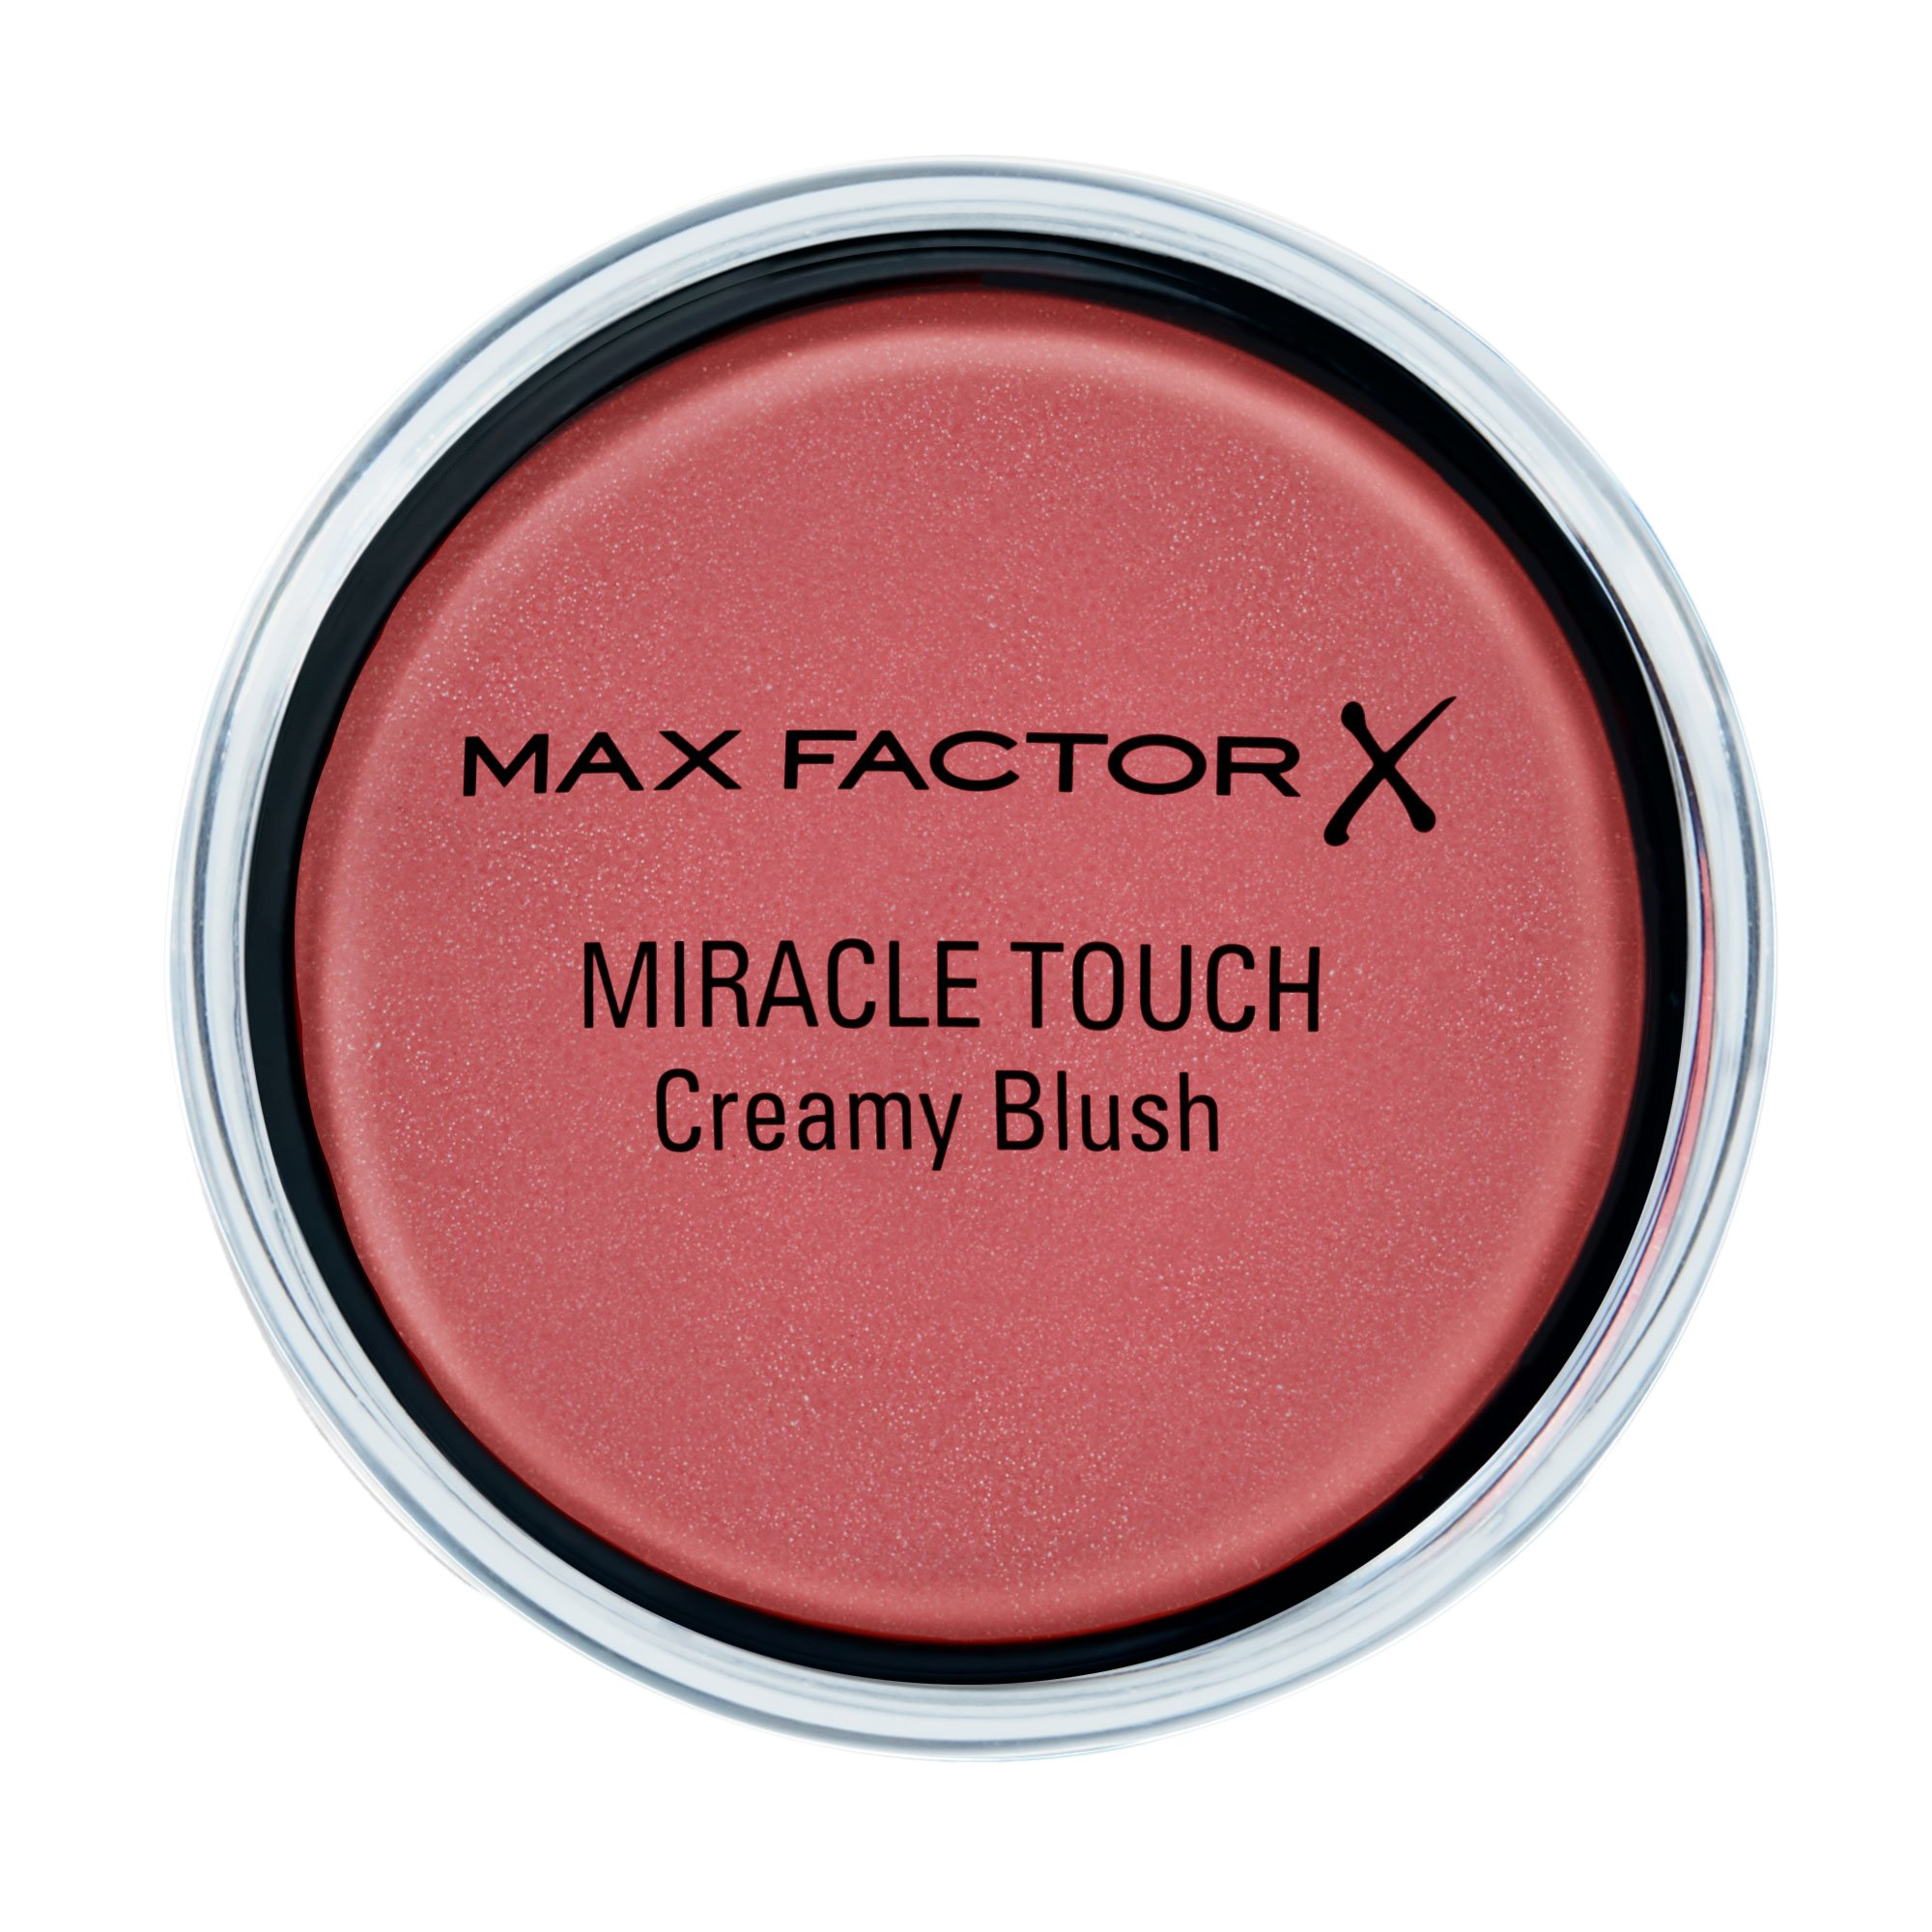 Miracle Touch Creamy Blush No. 14 Soft Pink by Max Factor for Women - 11.5 gram Blush by Max Factor (Image #2)